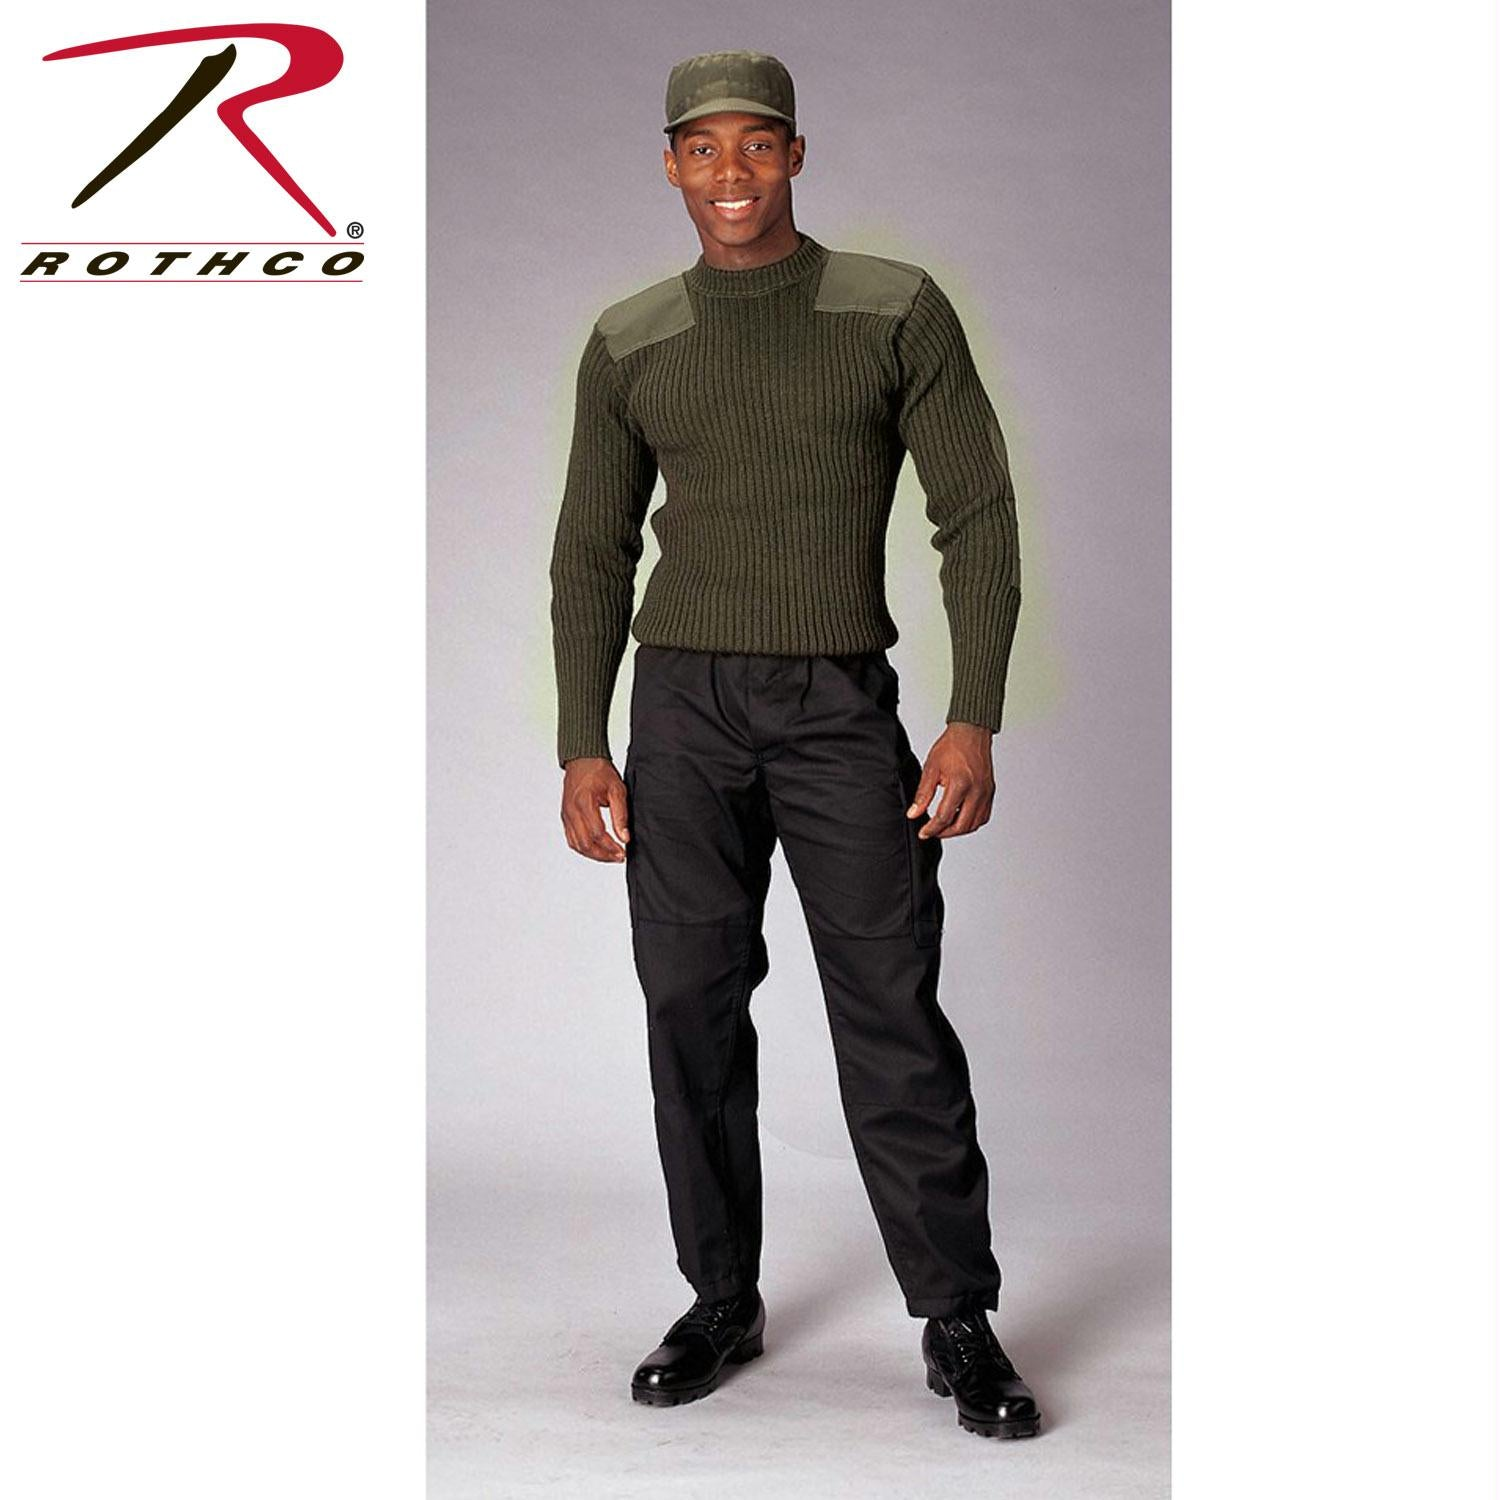 Rothco Government Type Wool Commando Sweater - 44 / Olive Drab